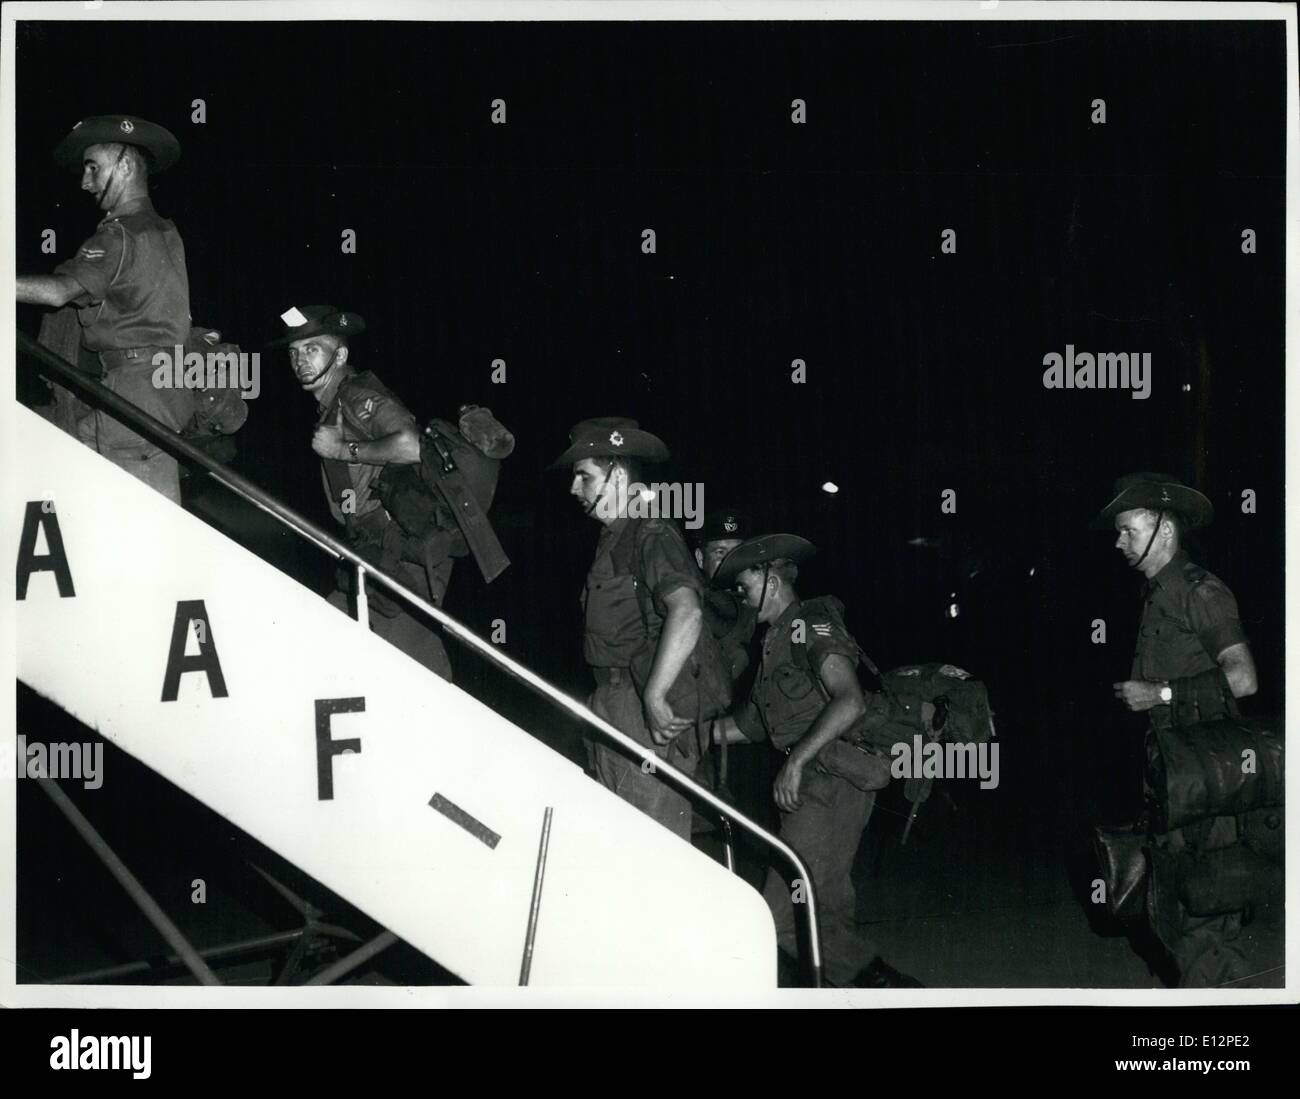 Feb. 24, 2012 - There were many demonstration when Australian National Servicemen were sent to fight in South Vietnam Picture shows some of them boarding an aircraft for South Vietnam. - Stock Image